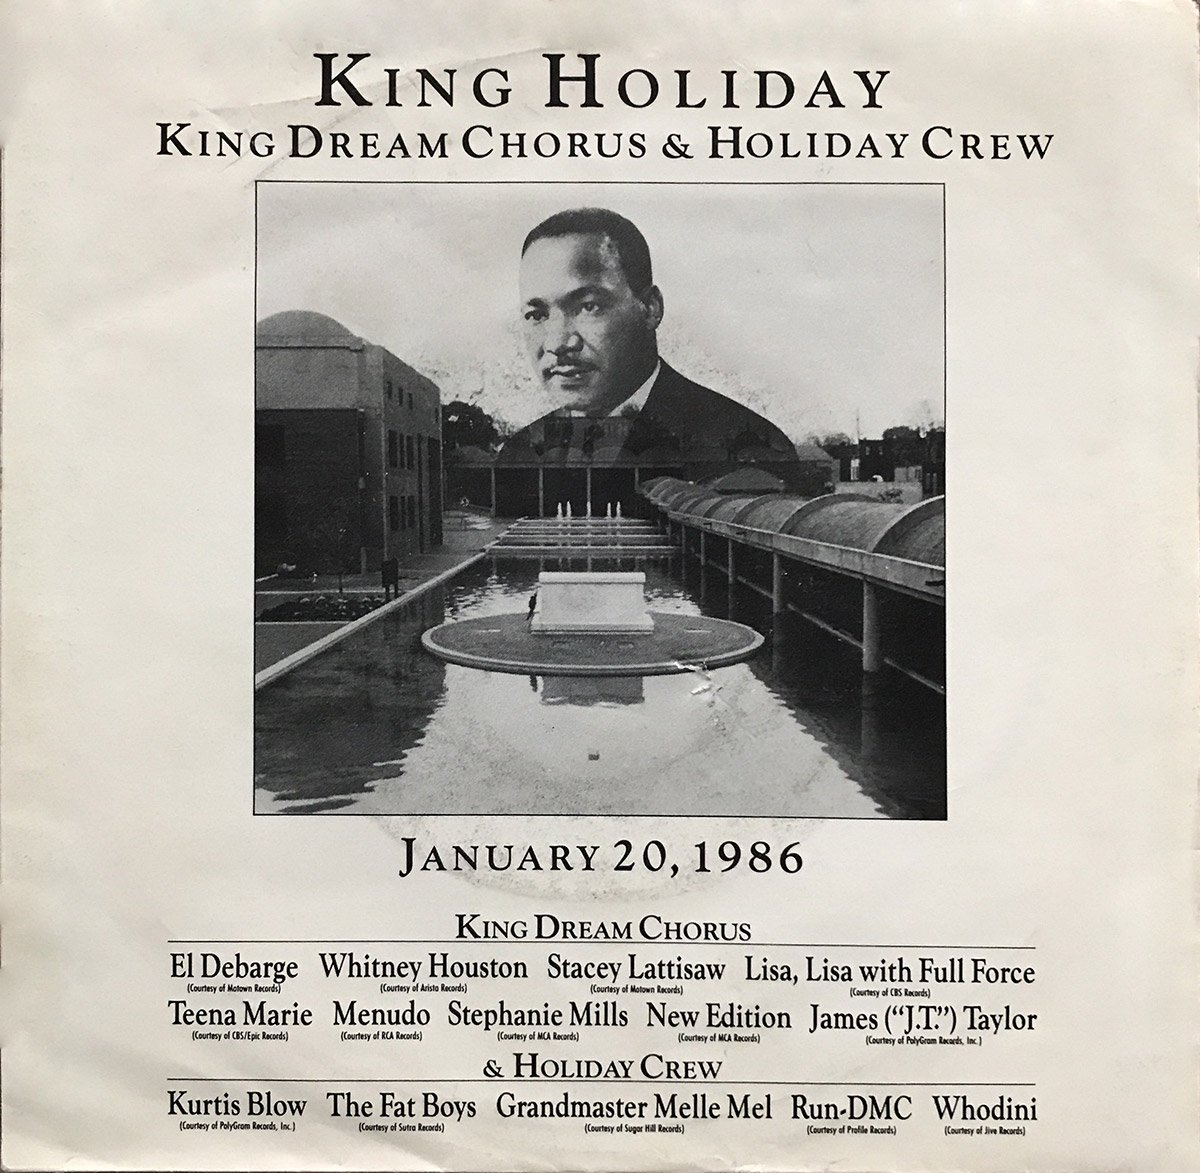 King Dream Chorus & Holiday Crew - King Holiday U.S. 7-inch vinyl single front cover